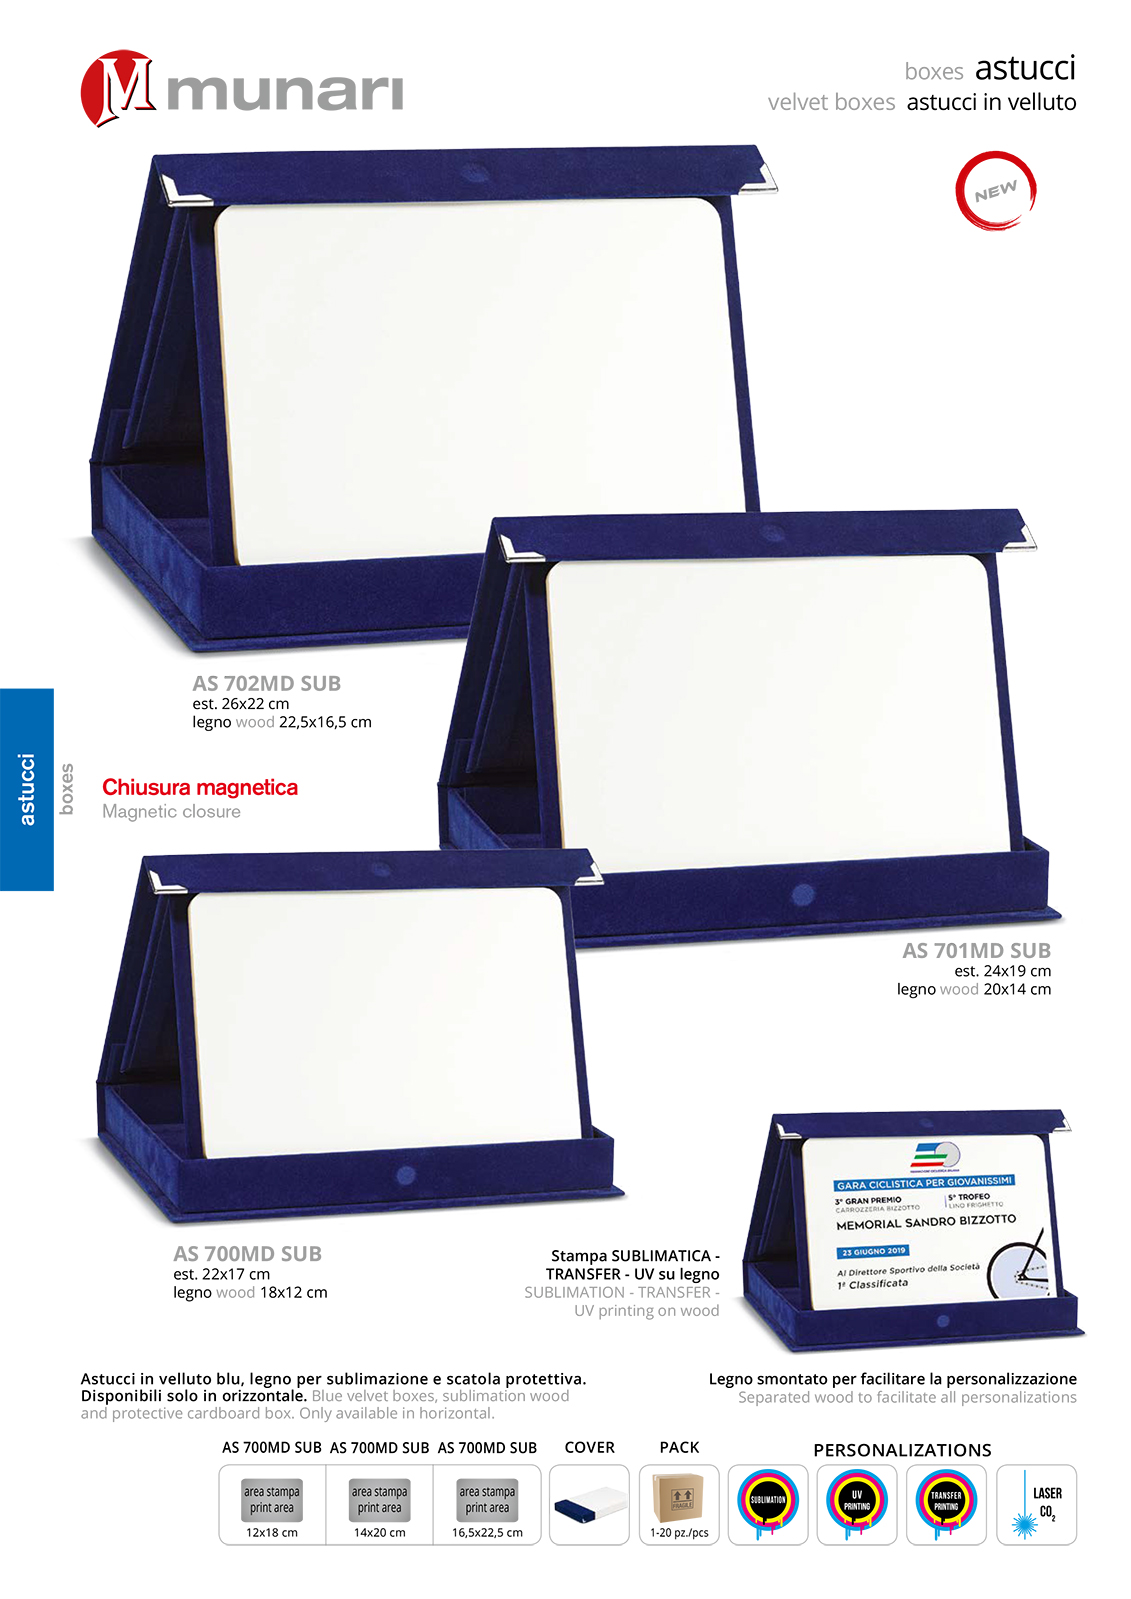 Blue velvet boxes series AS 700 with sublimation wood